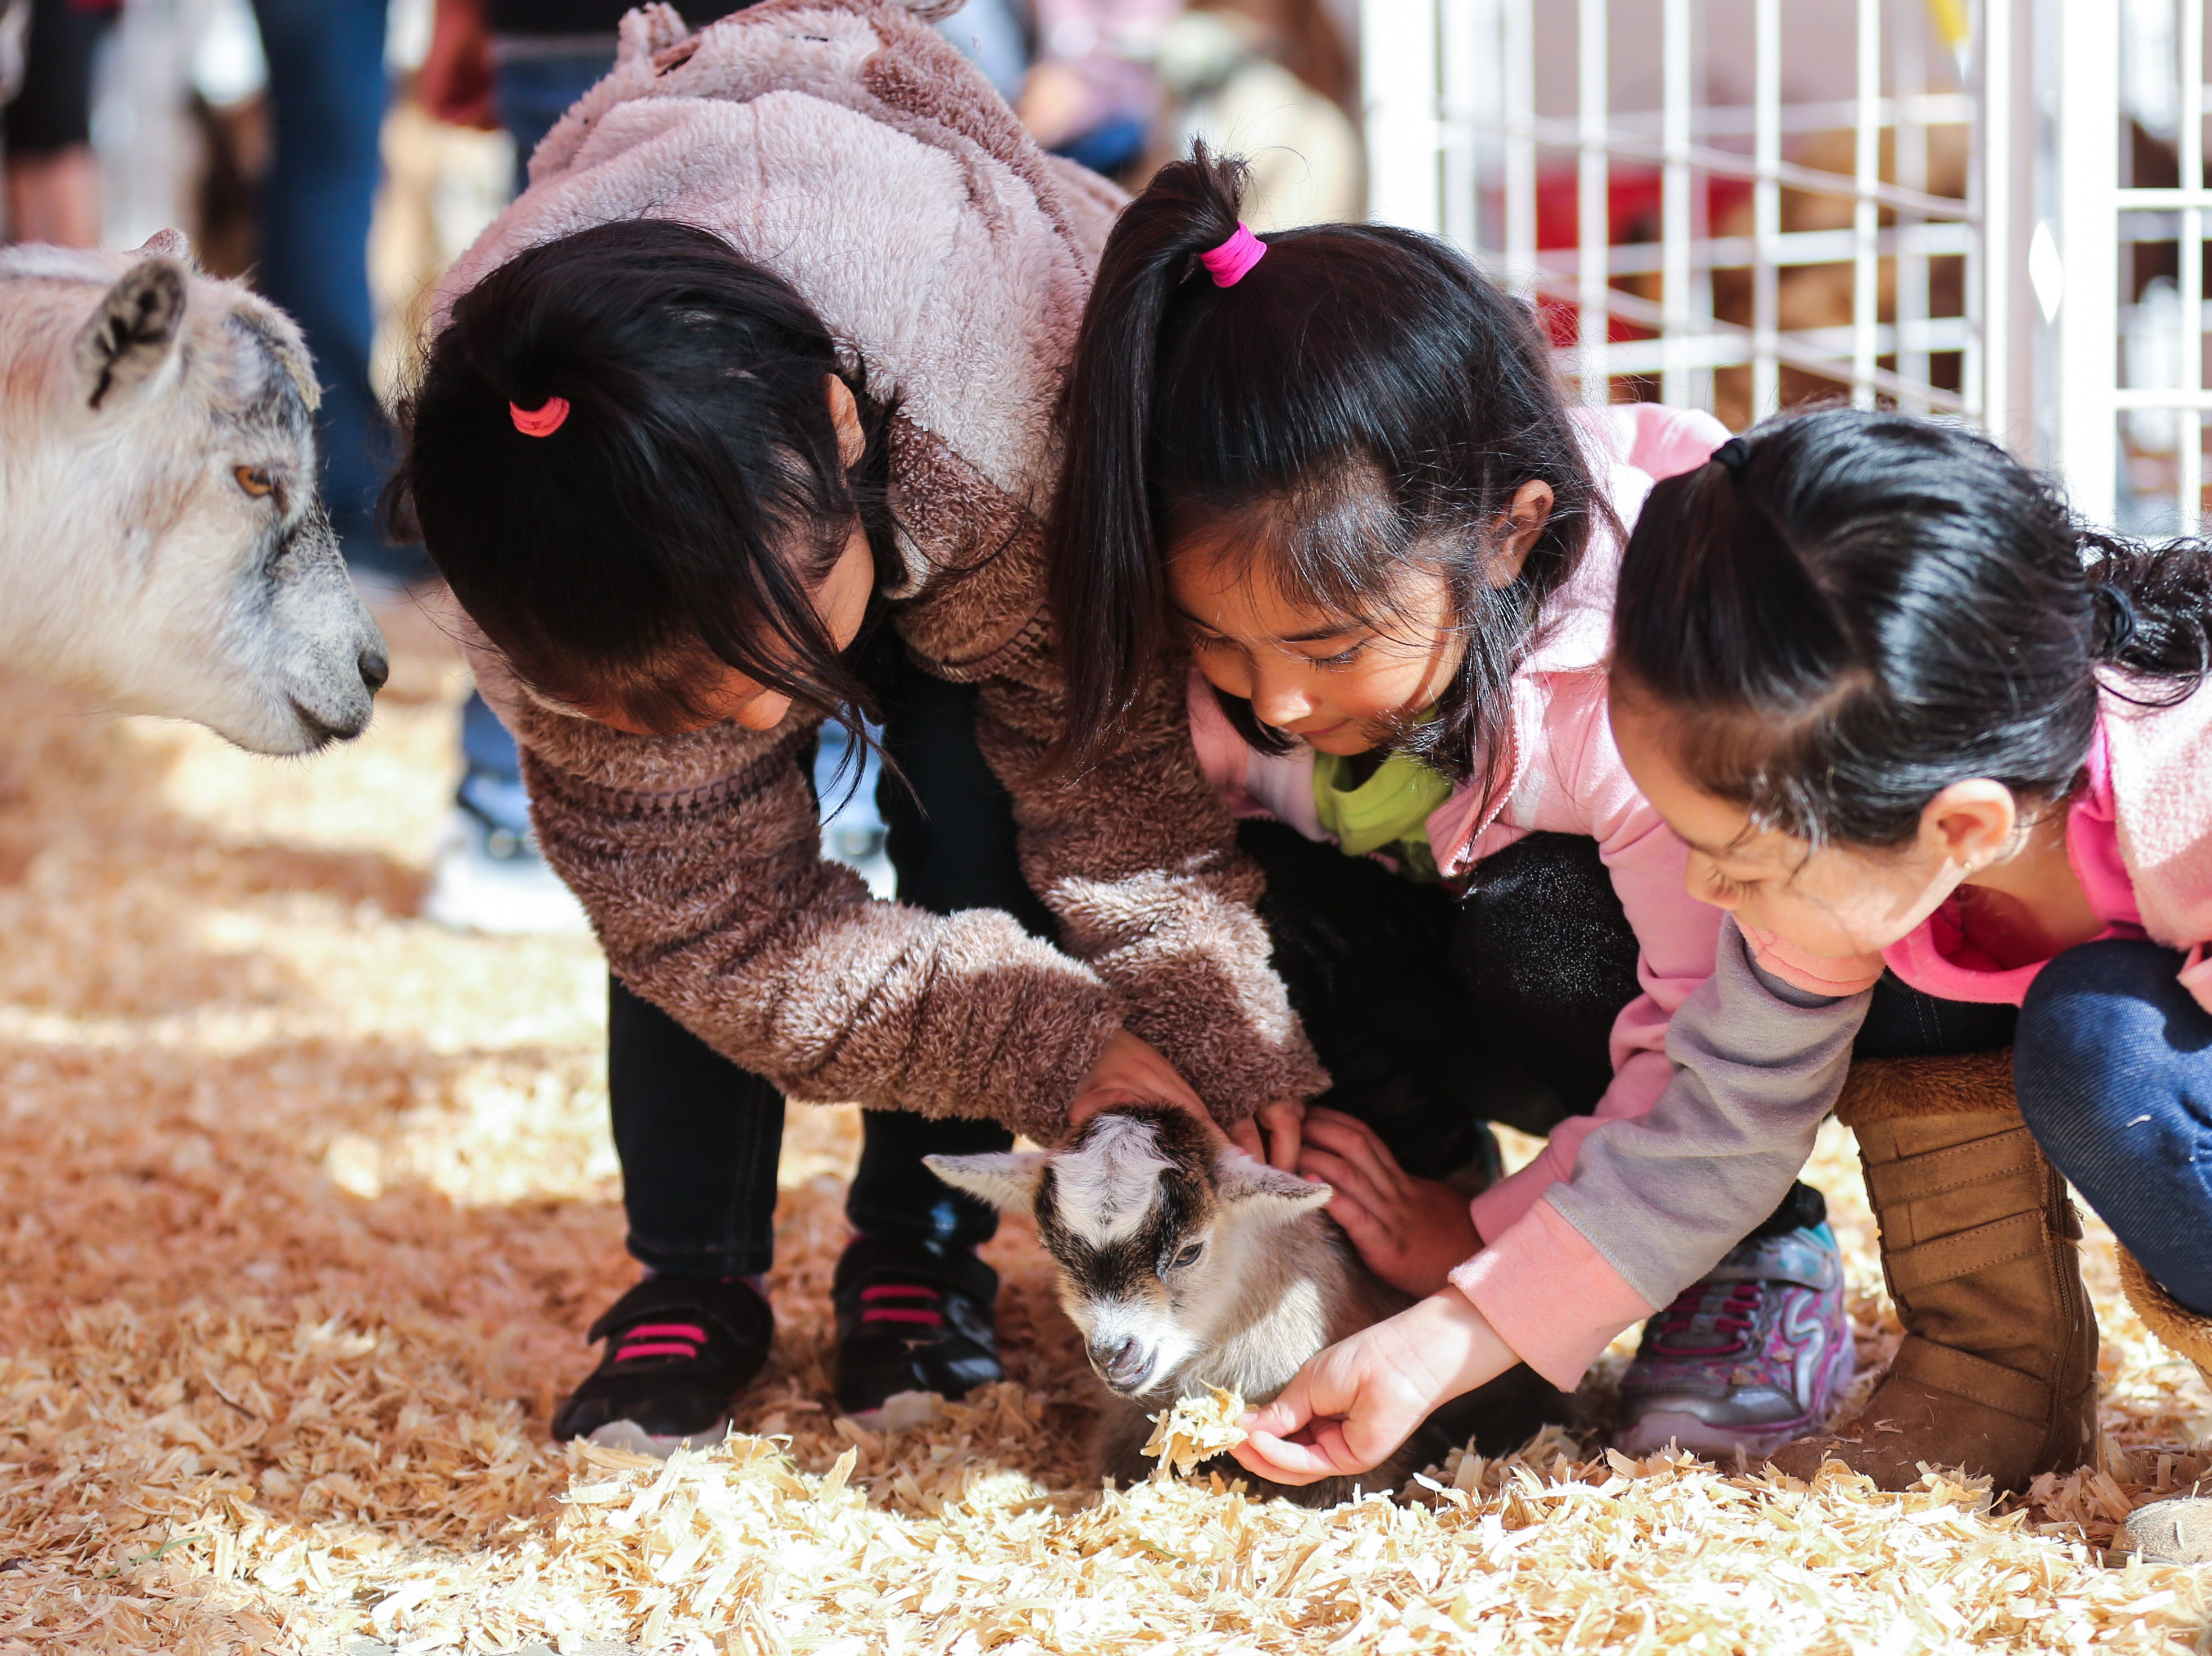 From left, Miles kindergarteners Abril Martinez, Samantha Olade and Jocelyn Sanchez pet a 5-day old goat during a field trip to the San Angelo Stock Show & Rodeo Tuesday, Feb. 5, 2019, at the San Angelo Fairgrounds.